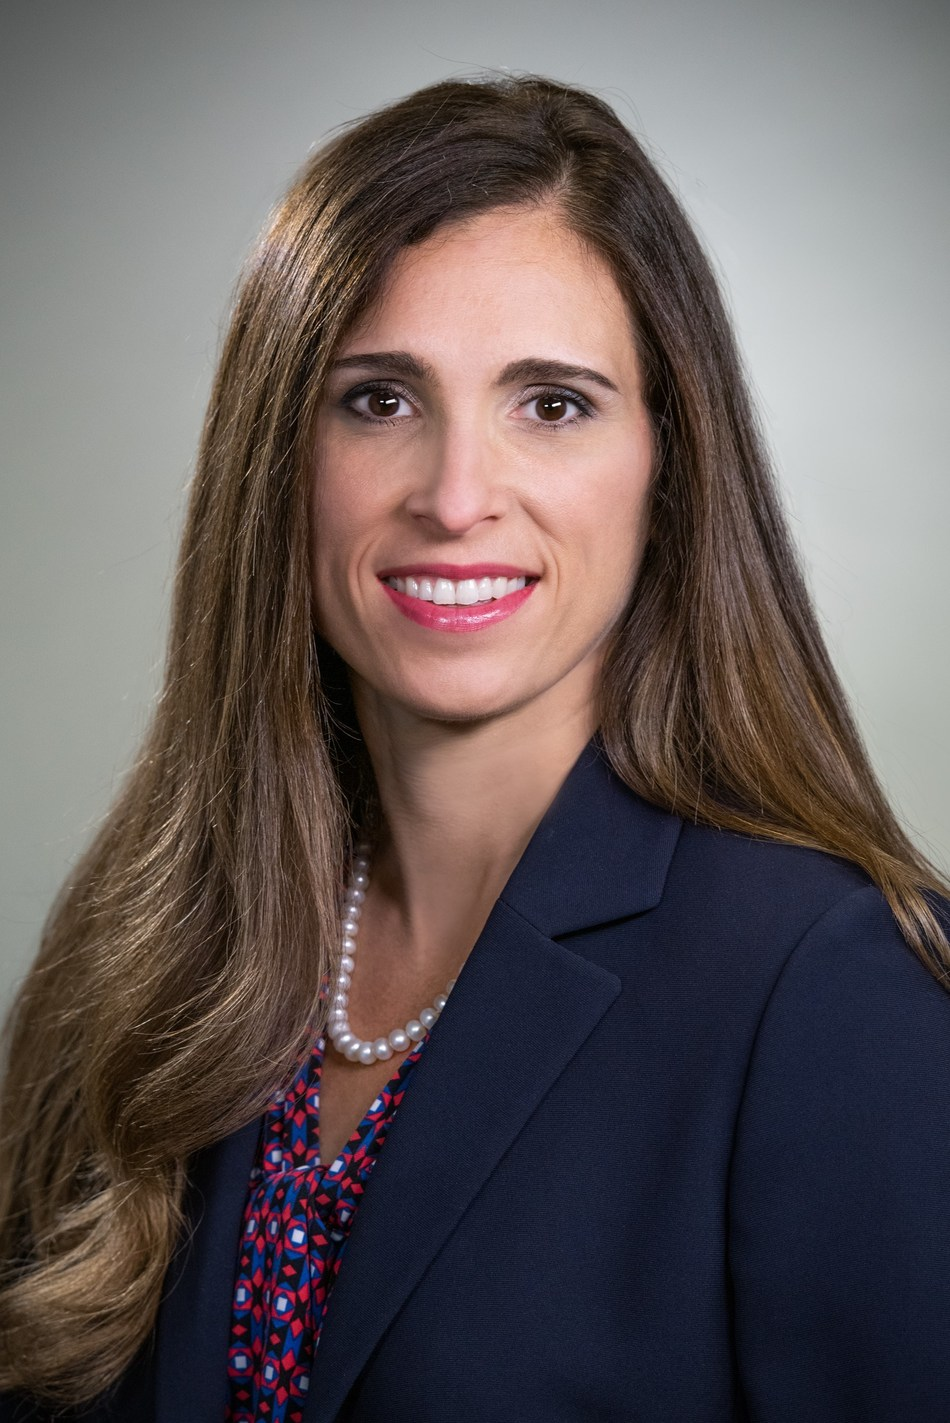 Katie Selbe, Senior Vice President and General Manager of Alion's Cyber Network Solutions Group